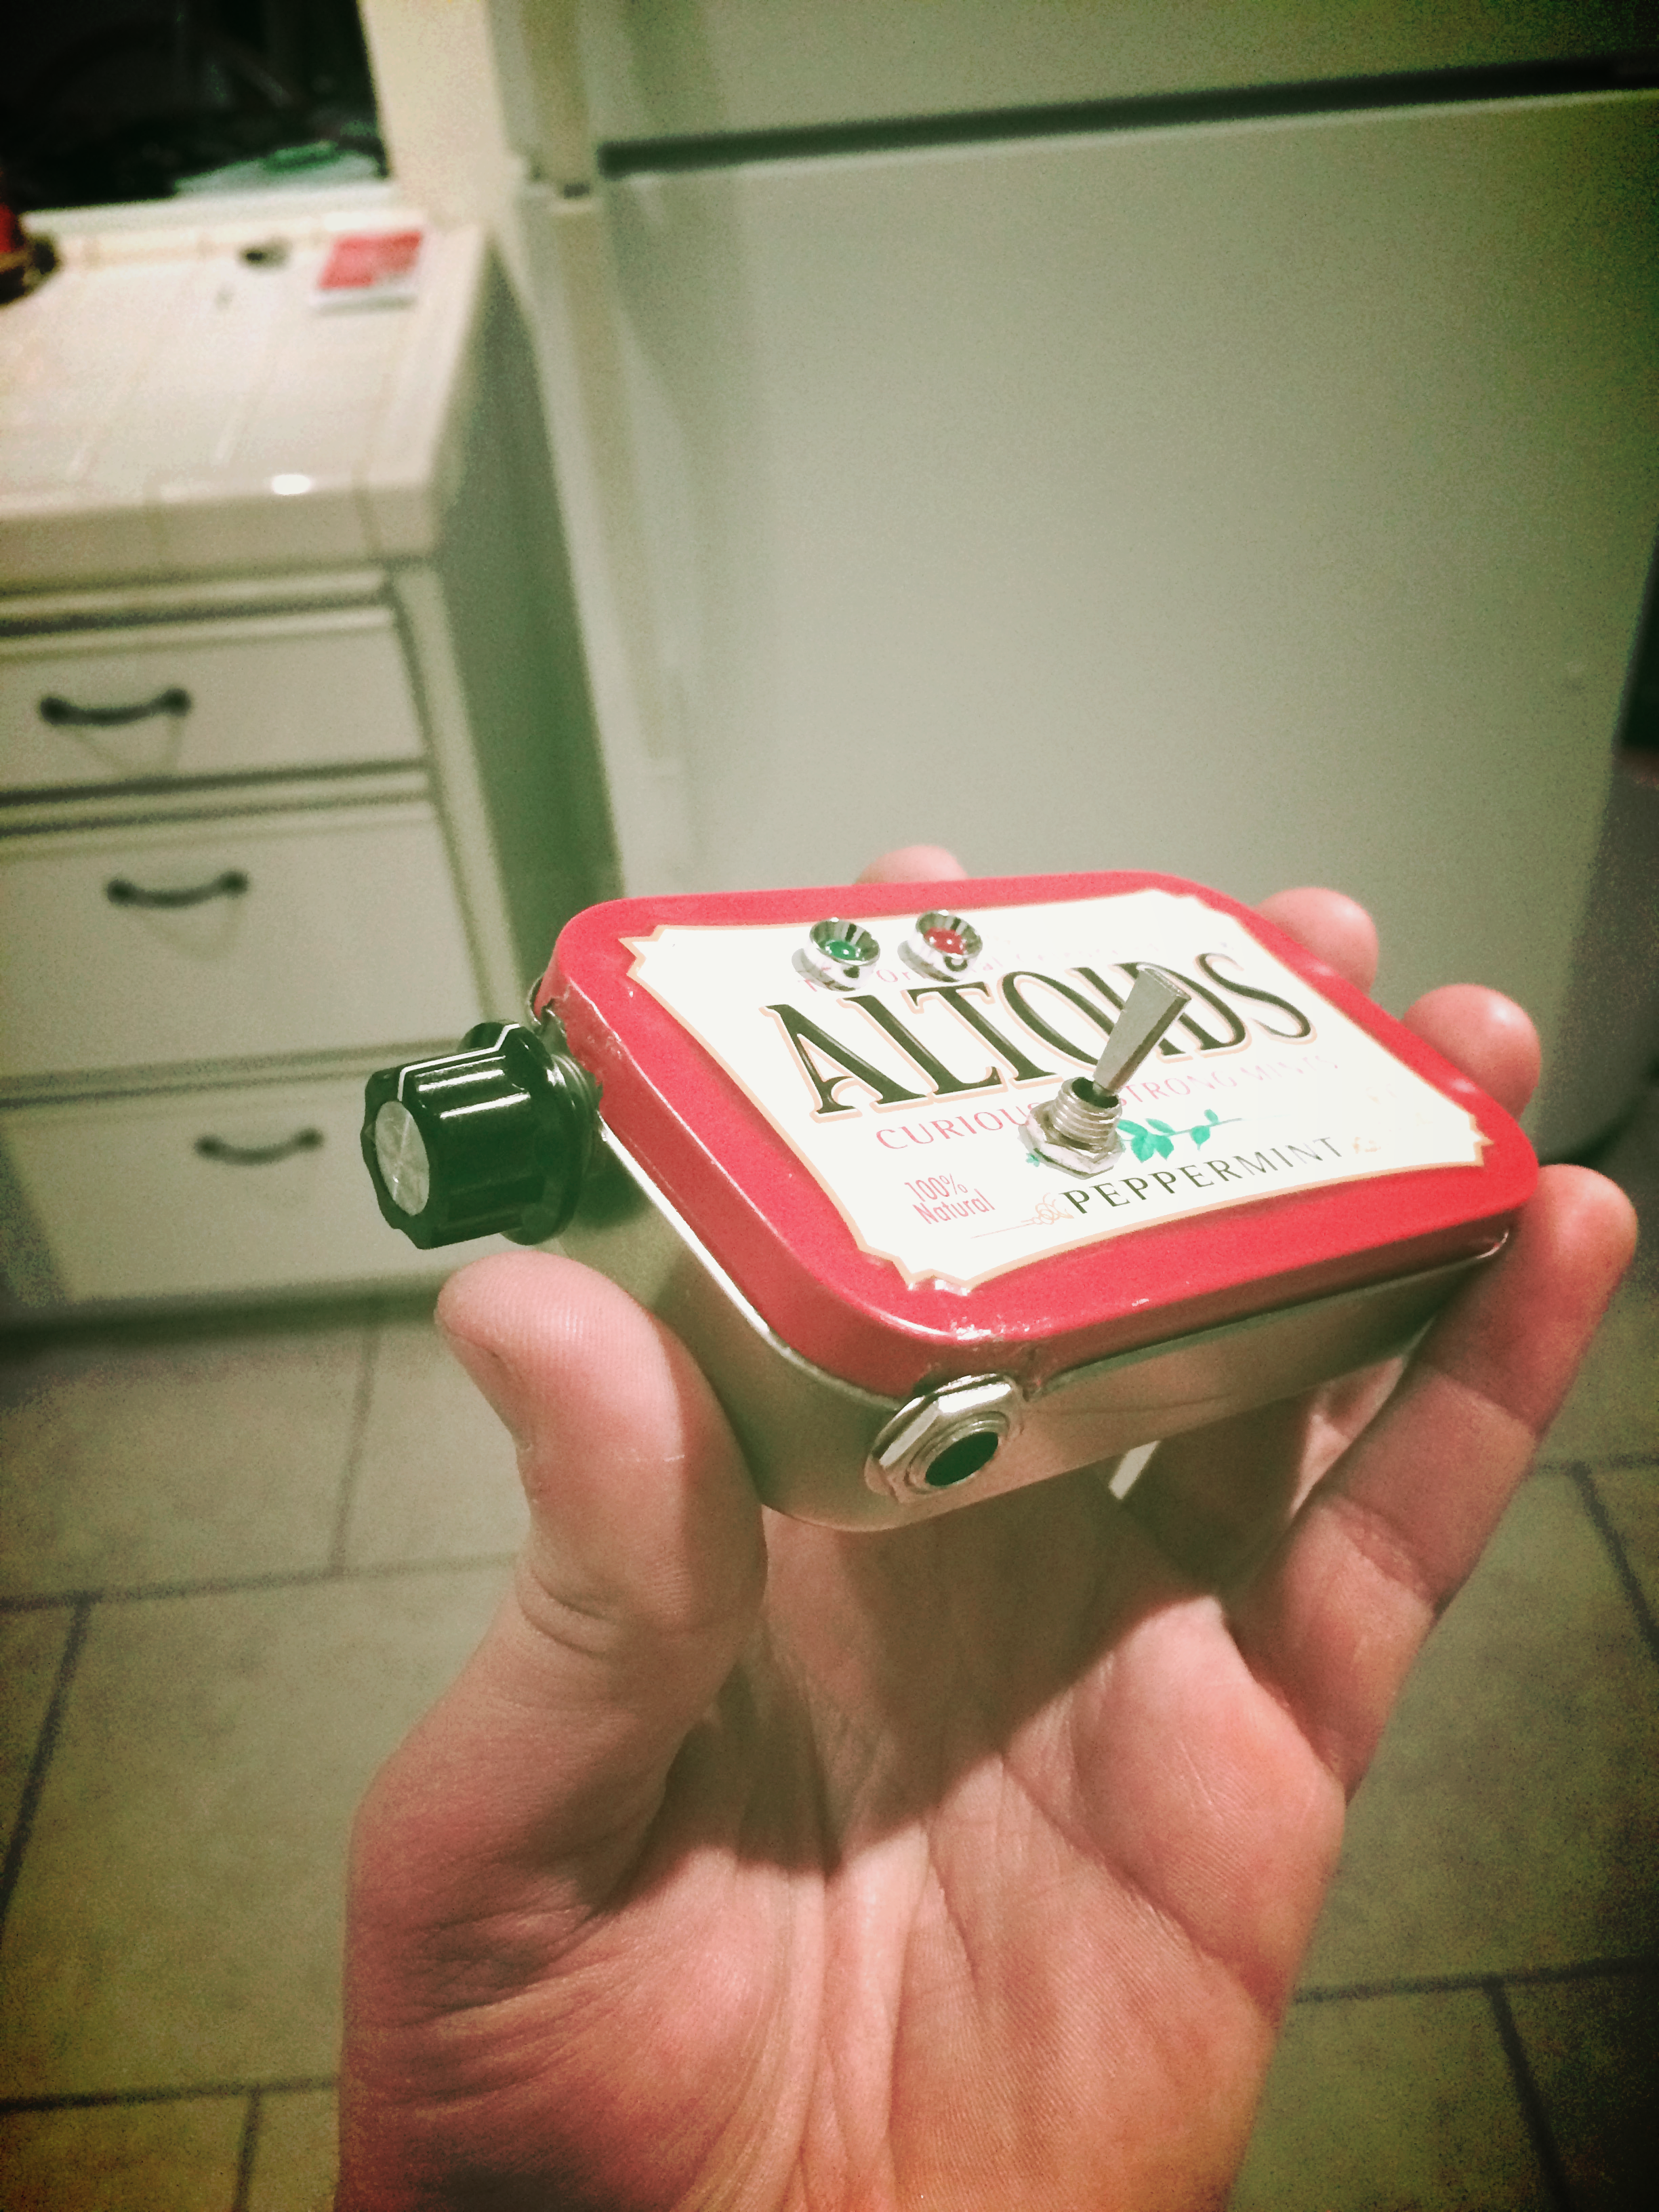 Example: 1b) A simple Altoid Mints tin box used to house the electronic components.